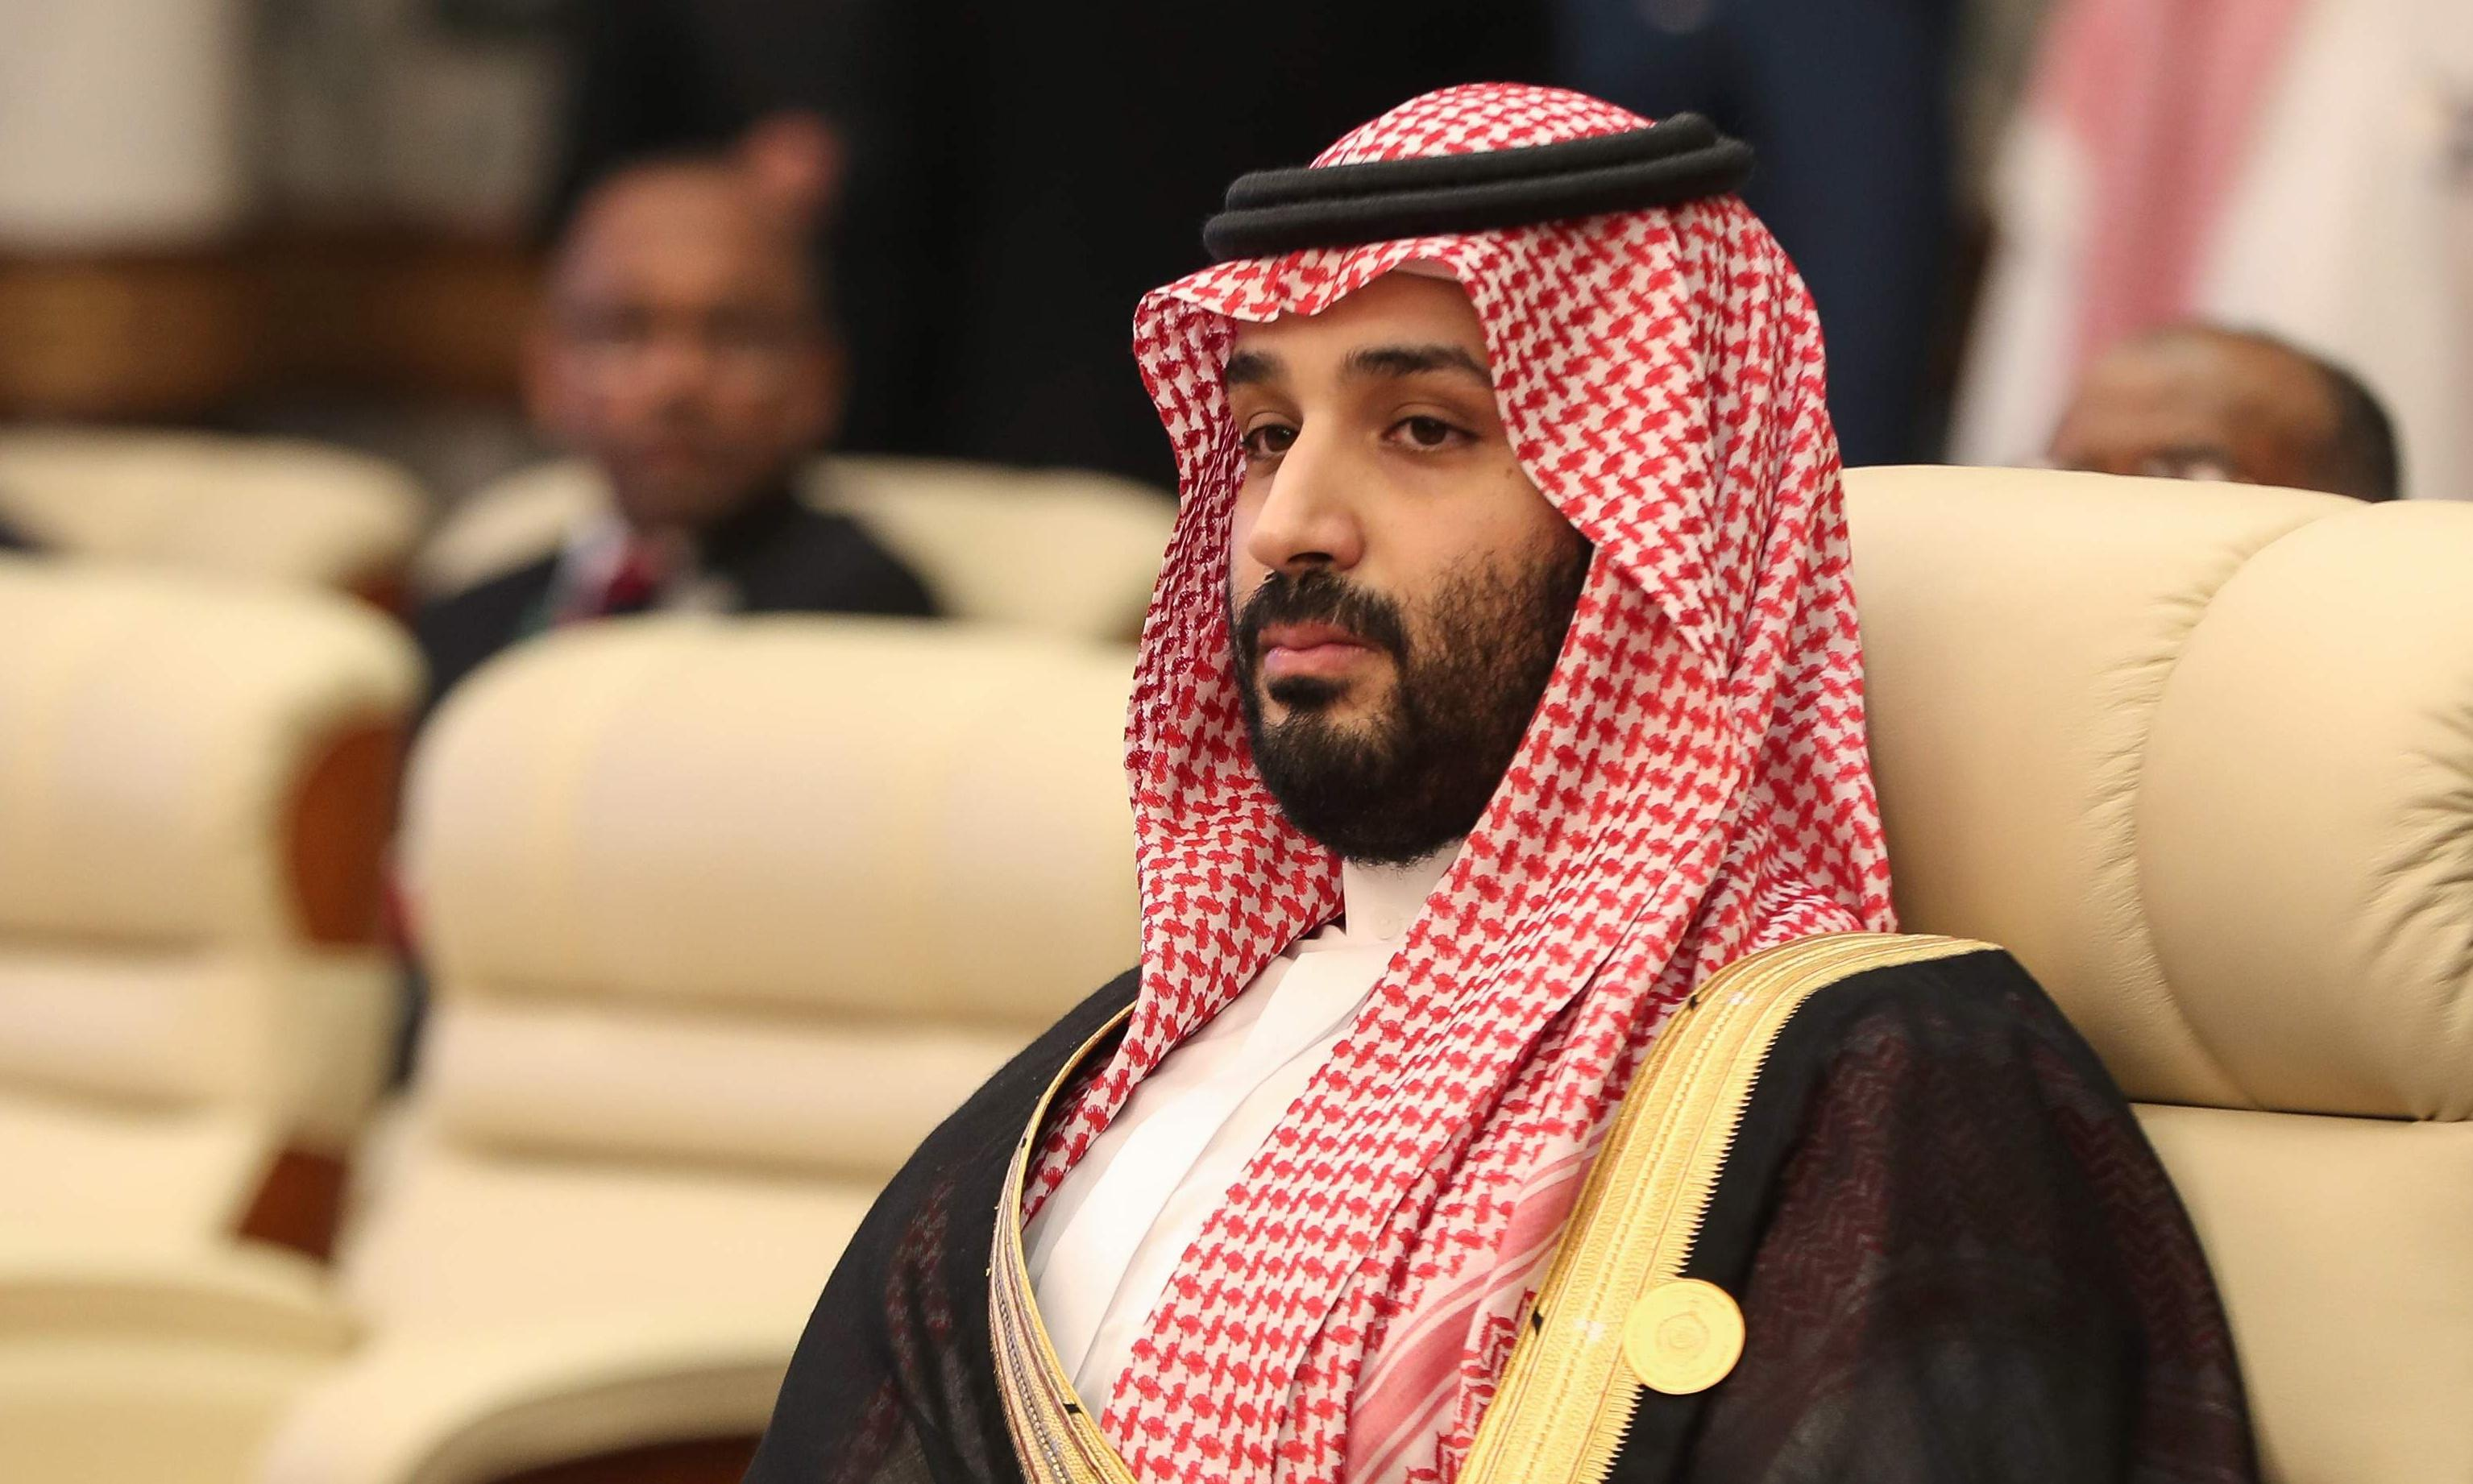 Saudi crown prince tells Iran: 'We won't hesitate to deal with any threat'